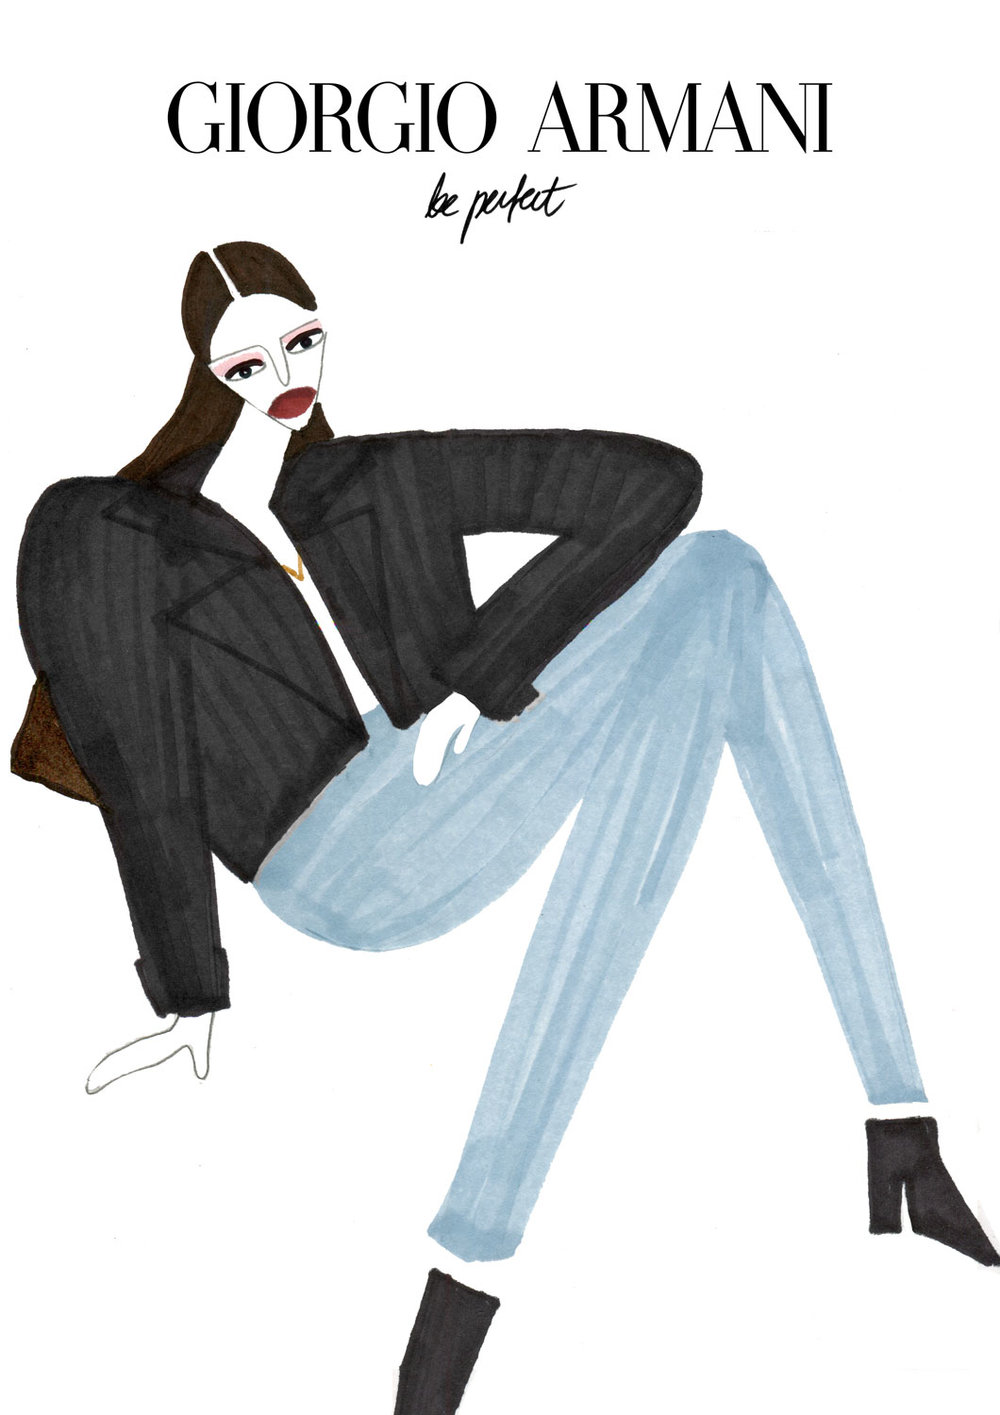 Fashion illustration for Giorgio Armani's model in black coat